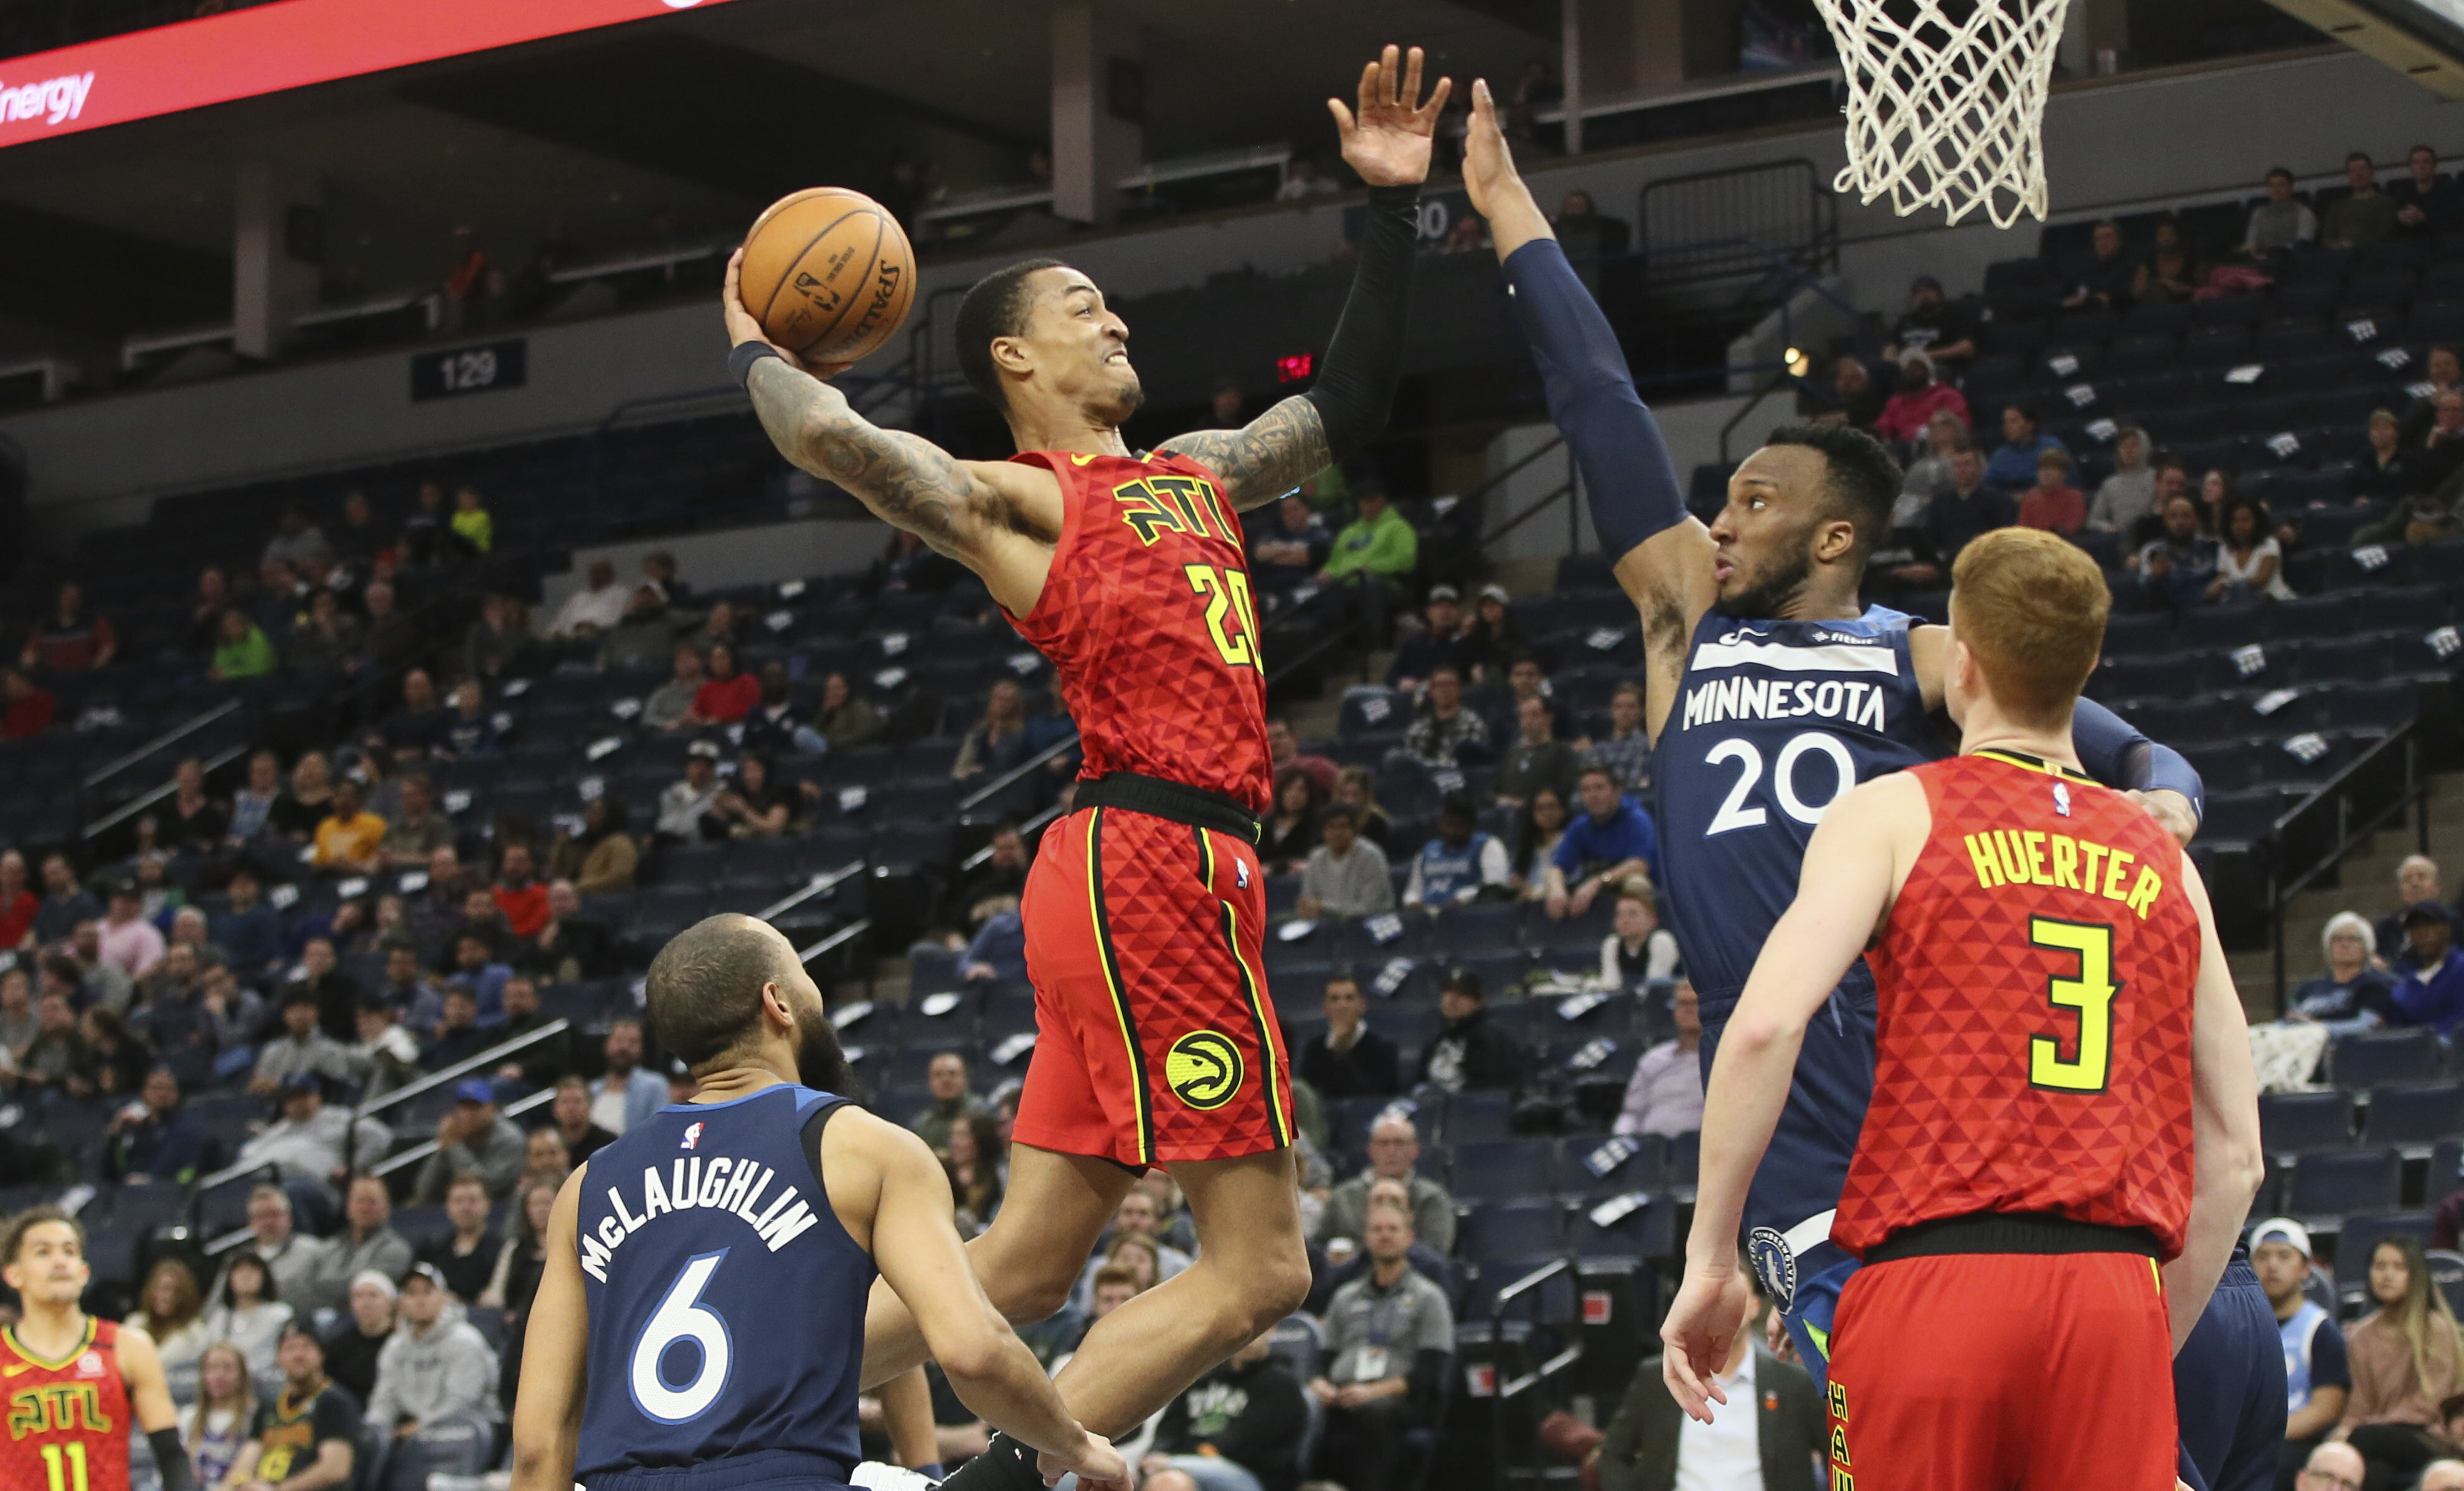 Hawks beat Wolves 127-120 as teams brace for roster shifts